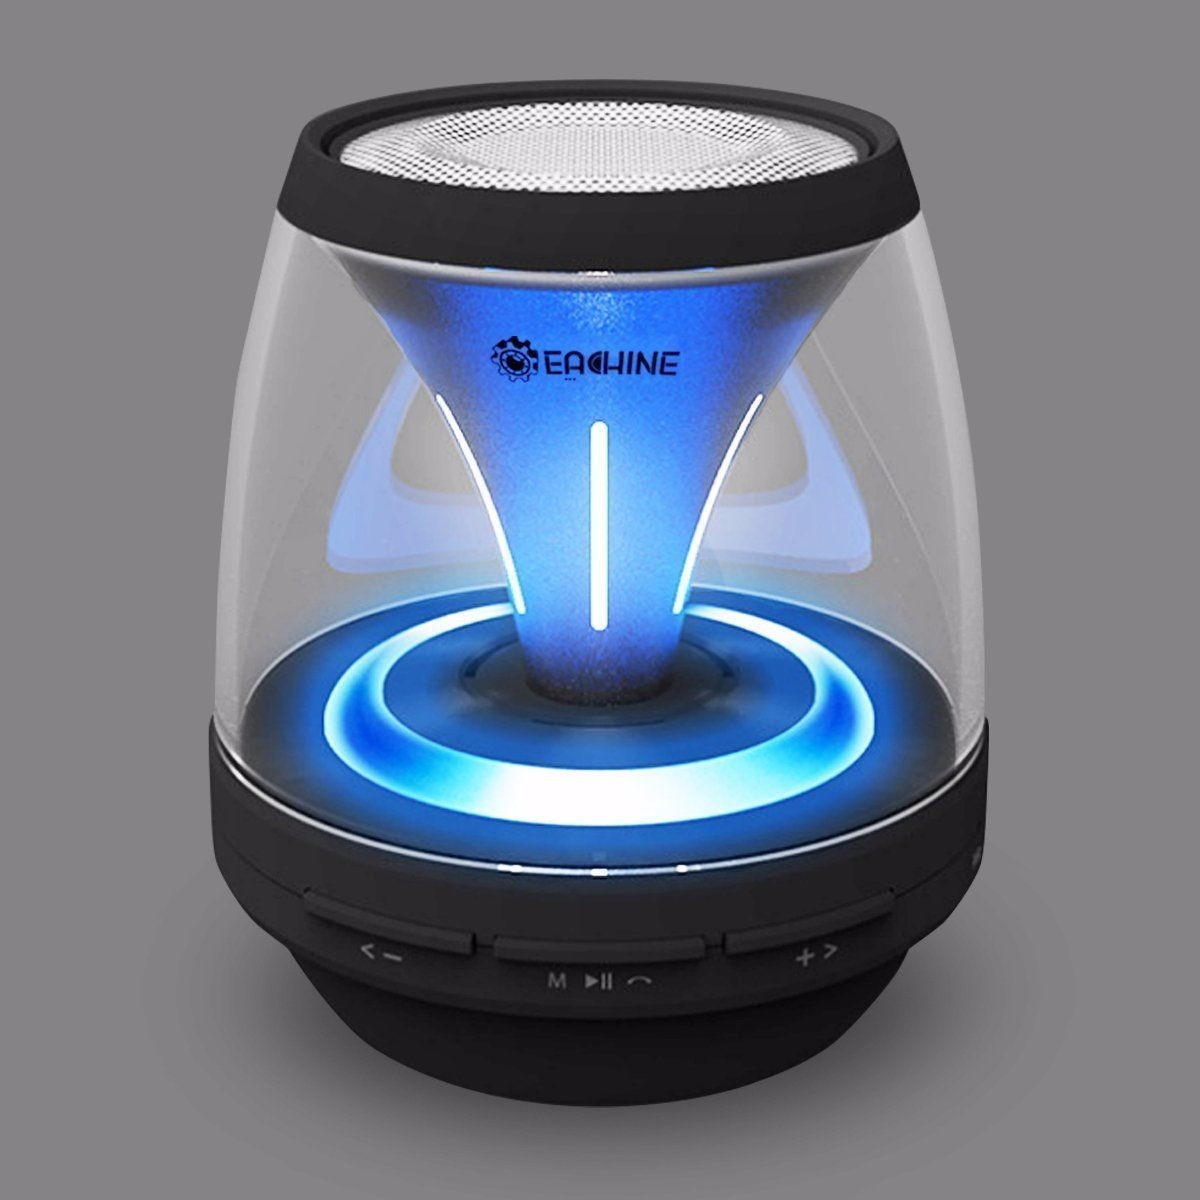 New LED Light Beautiful Wireless Bluetooth Speaker Eachine Vivid Jar Portable Speaker 4 Mode Lighting Super Quality(China (Mainland))